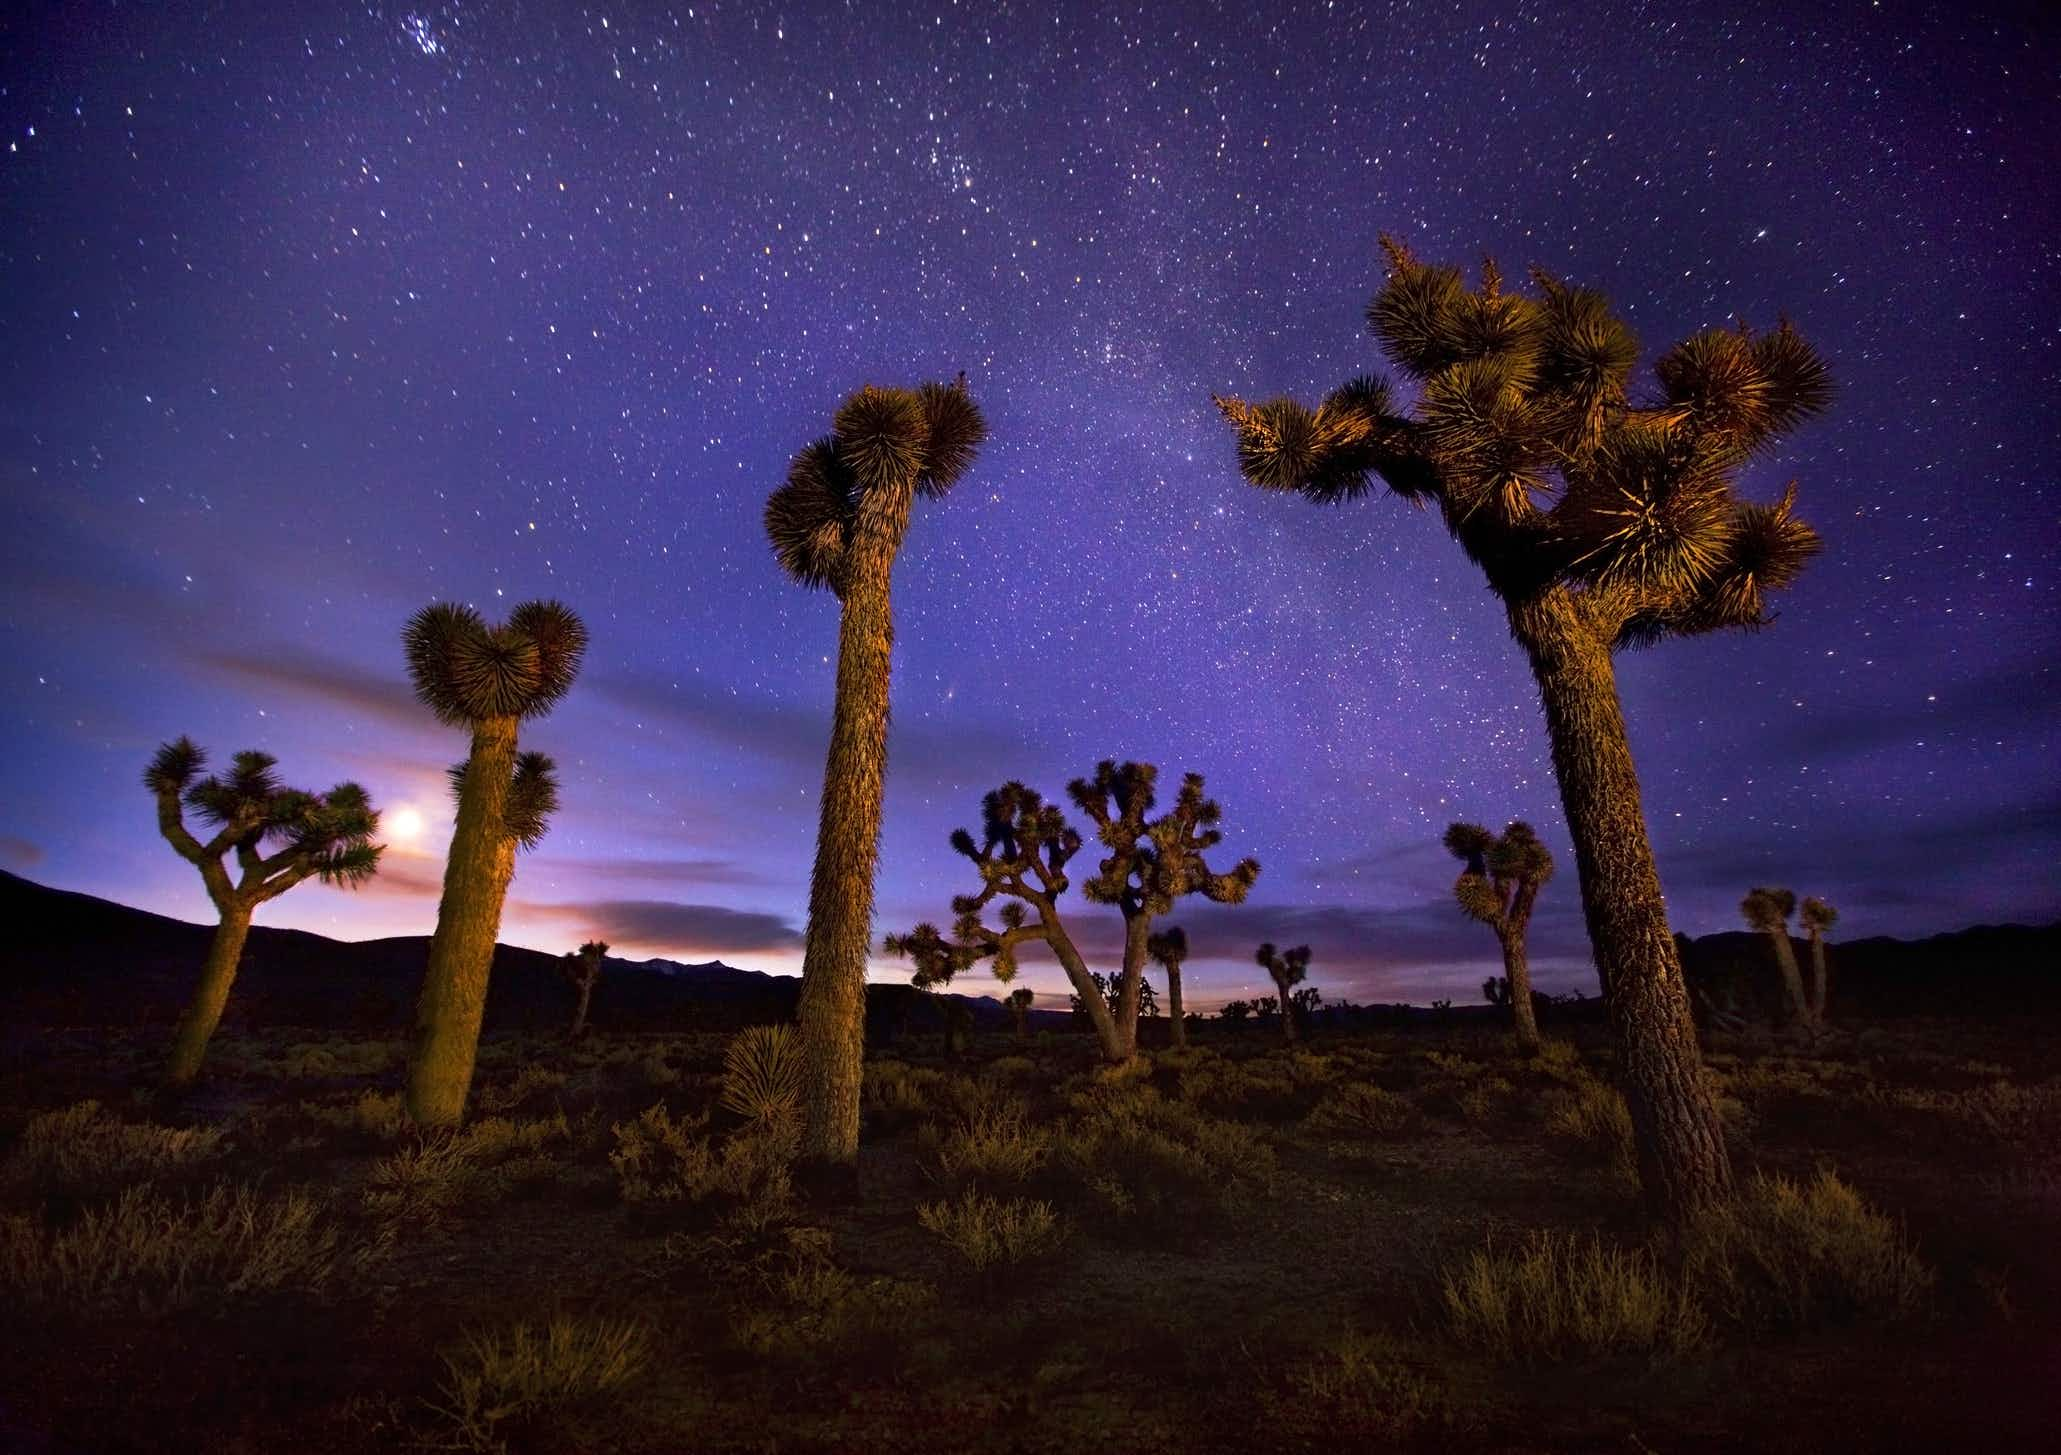 Joshua Tree National Park is set to draw in stargazers as it becomes a Dark Sky Park